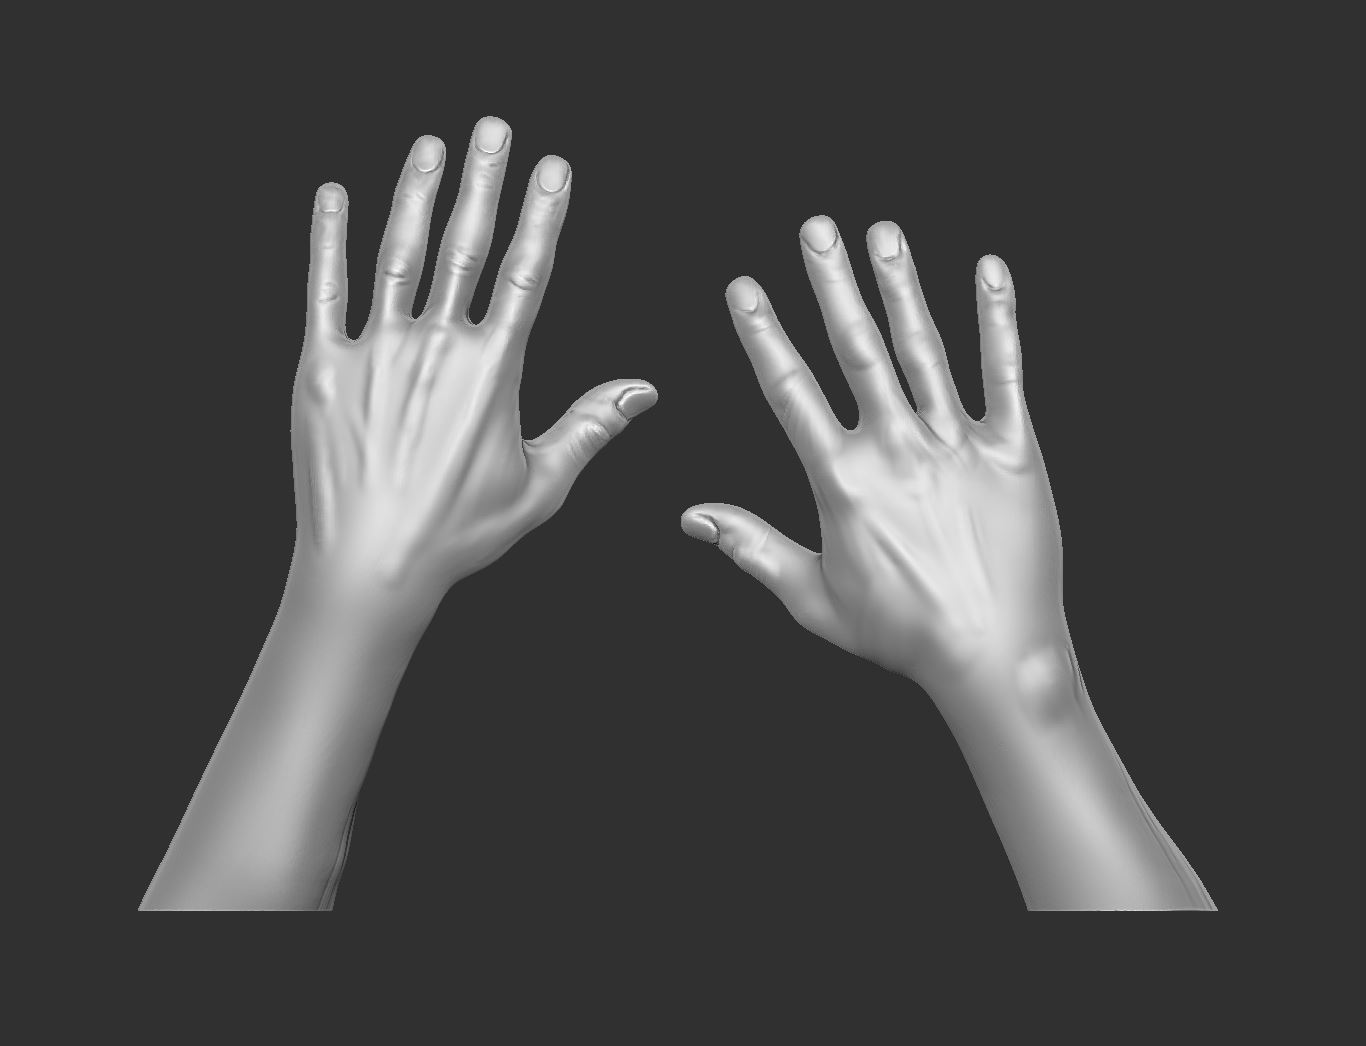 A basic rough sketch of the hero hands in Zbrush.